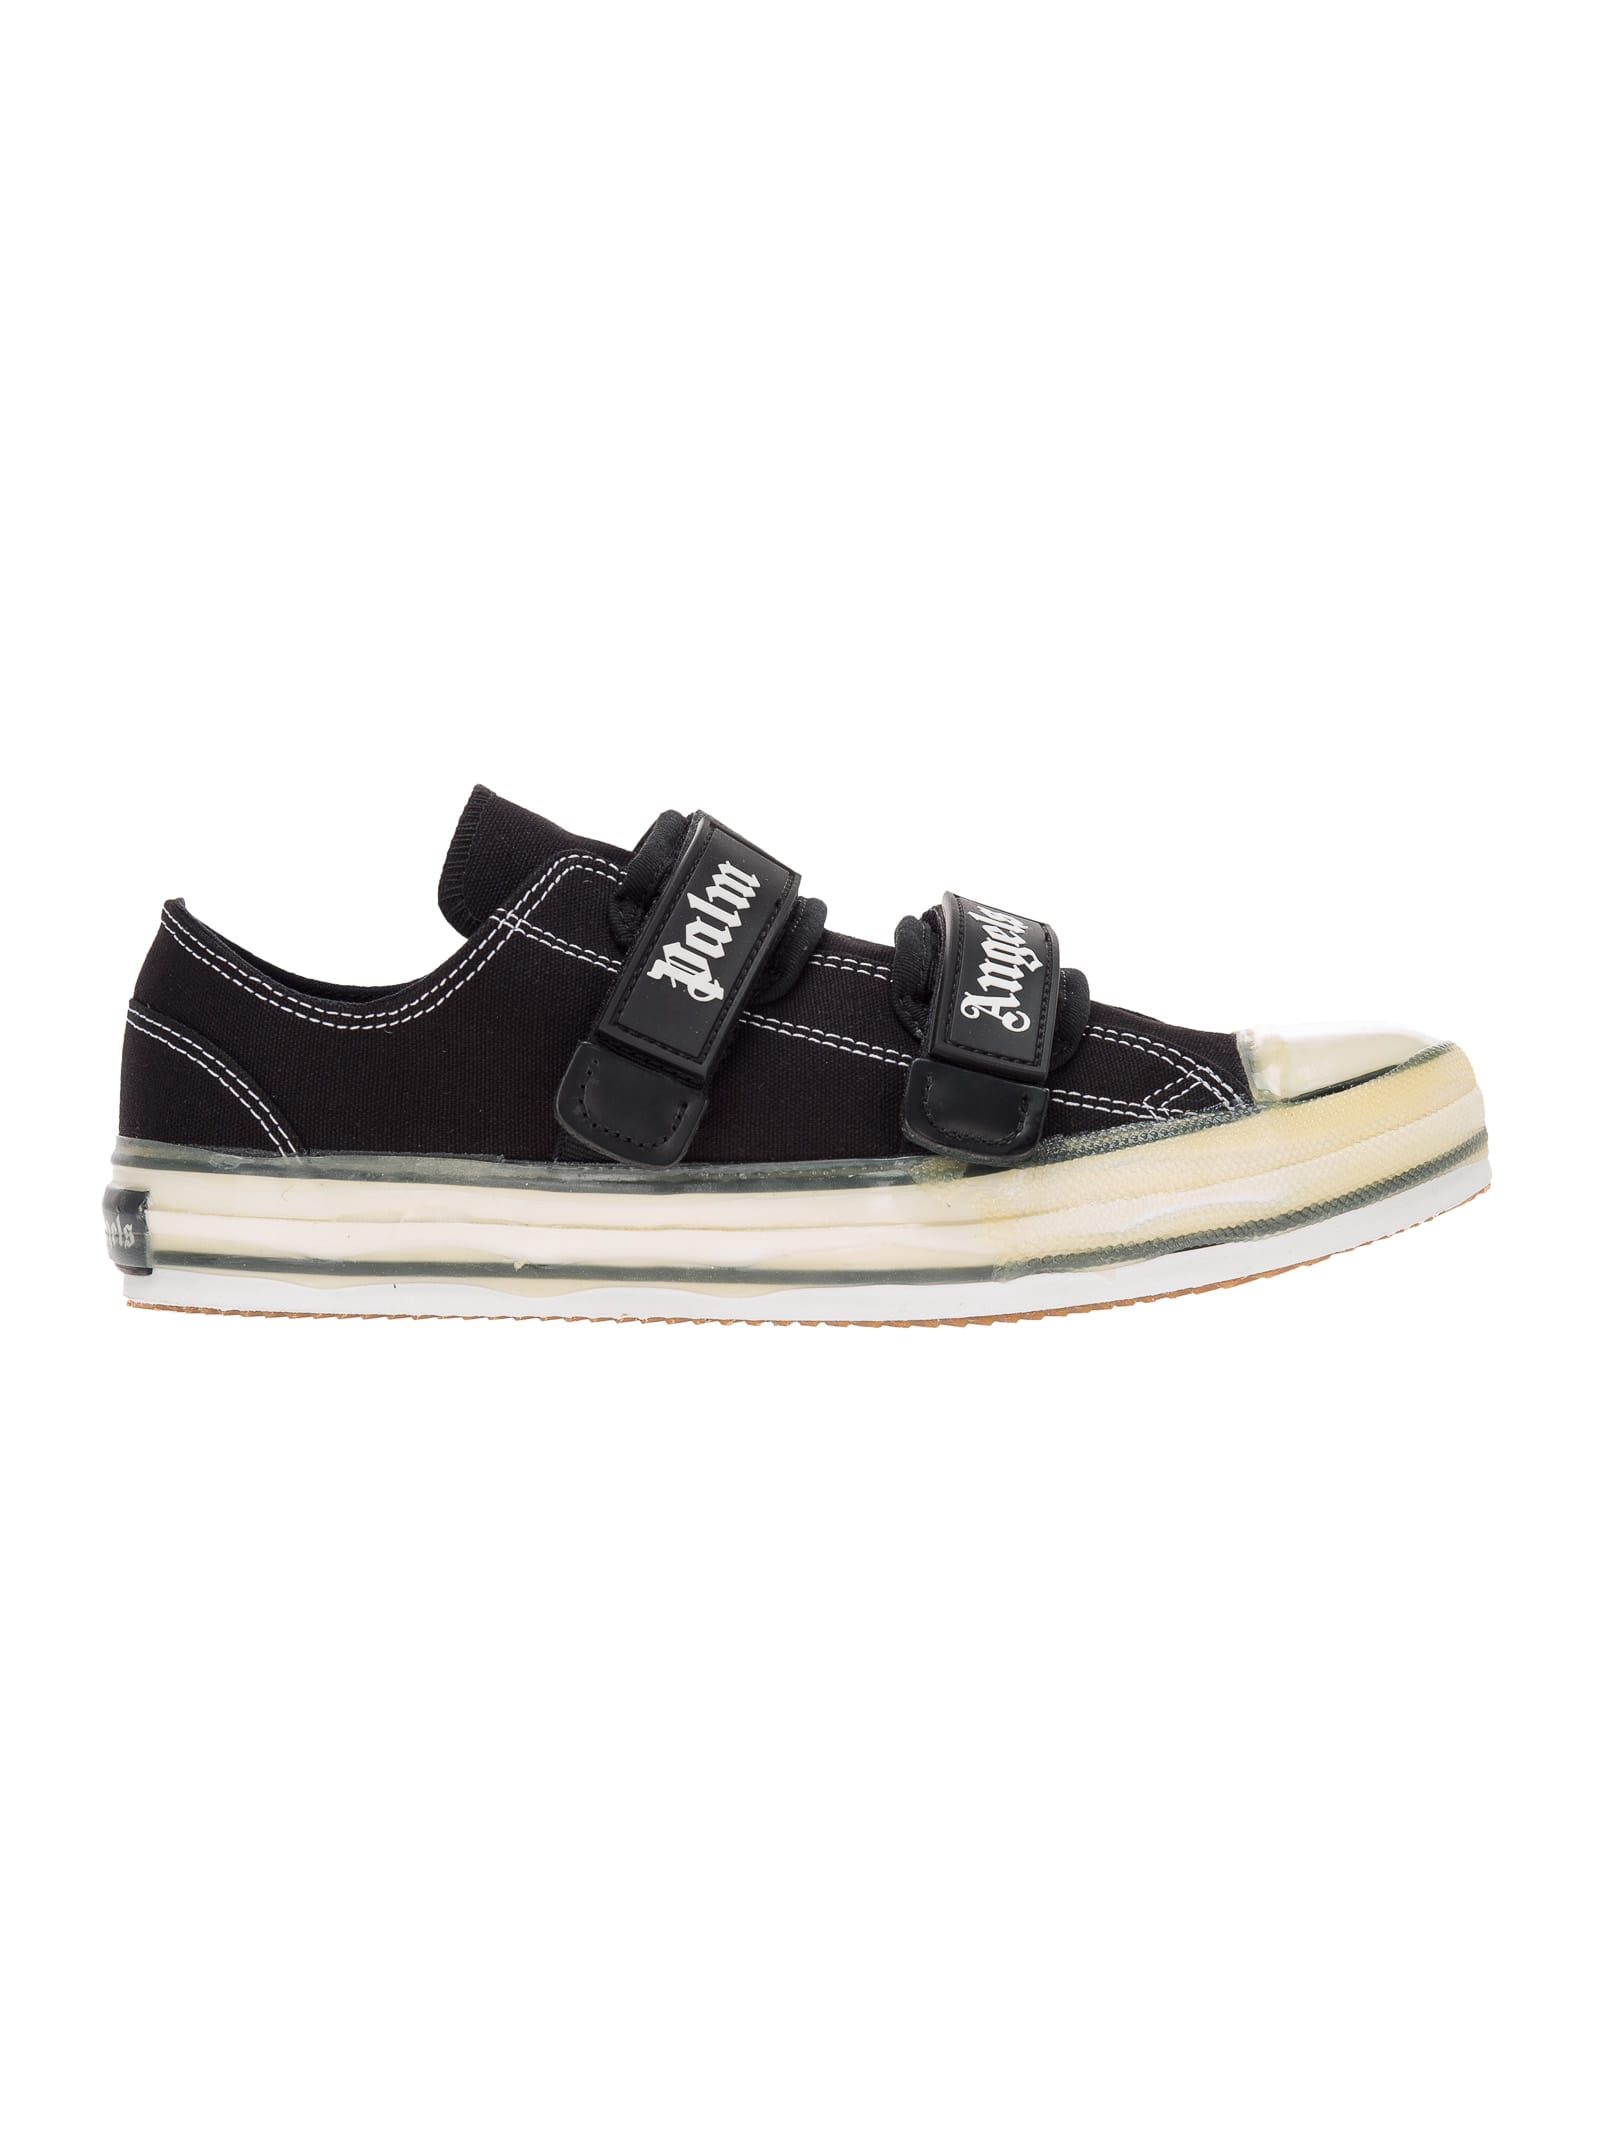 Strap Angels Palm Sneakers Vulcanized Touch 80OkXPNwn